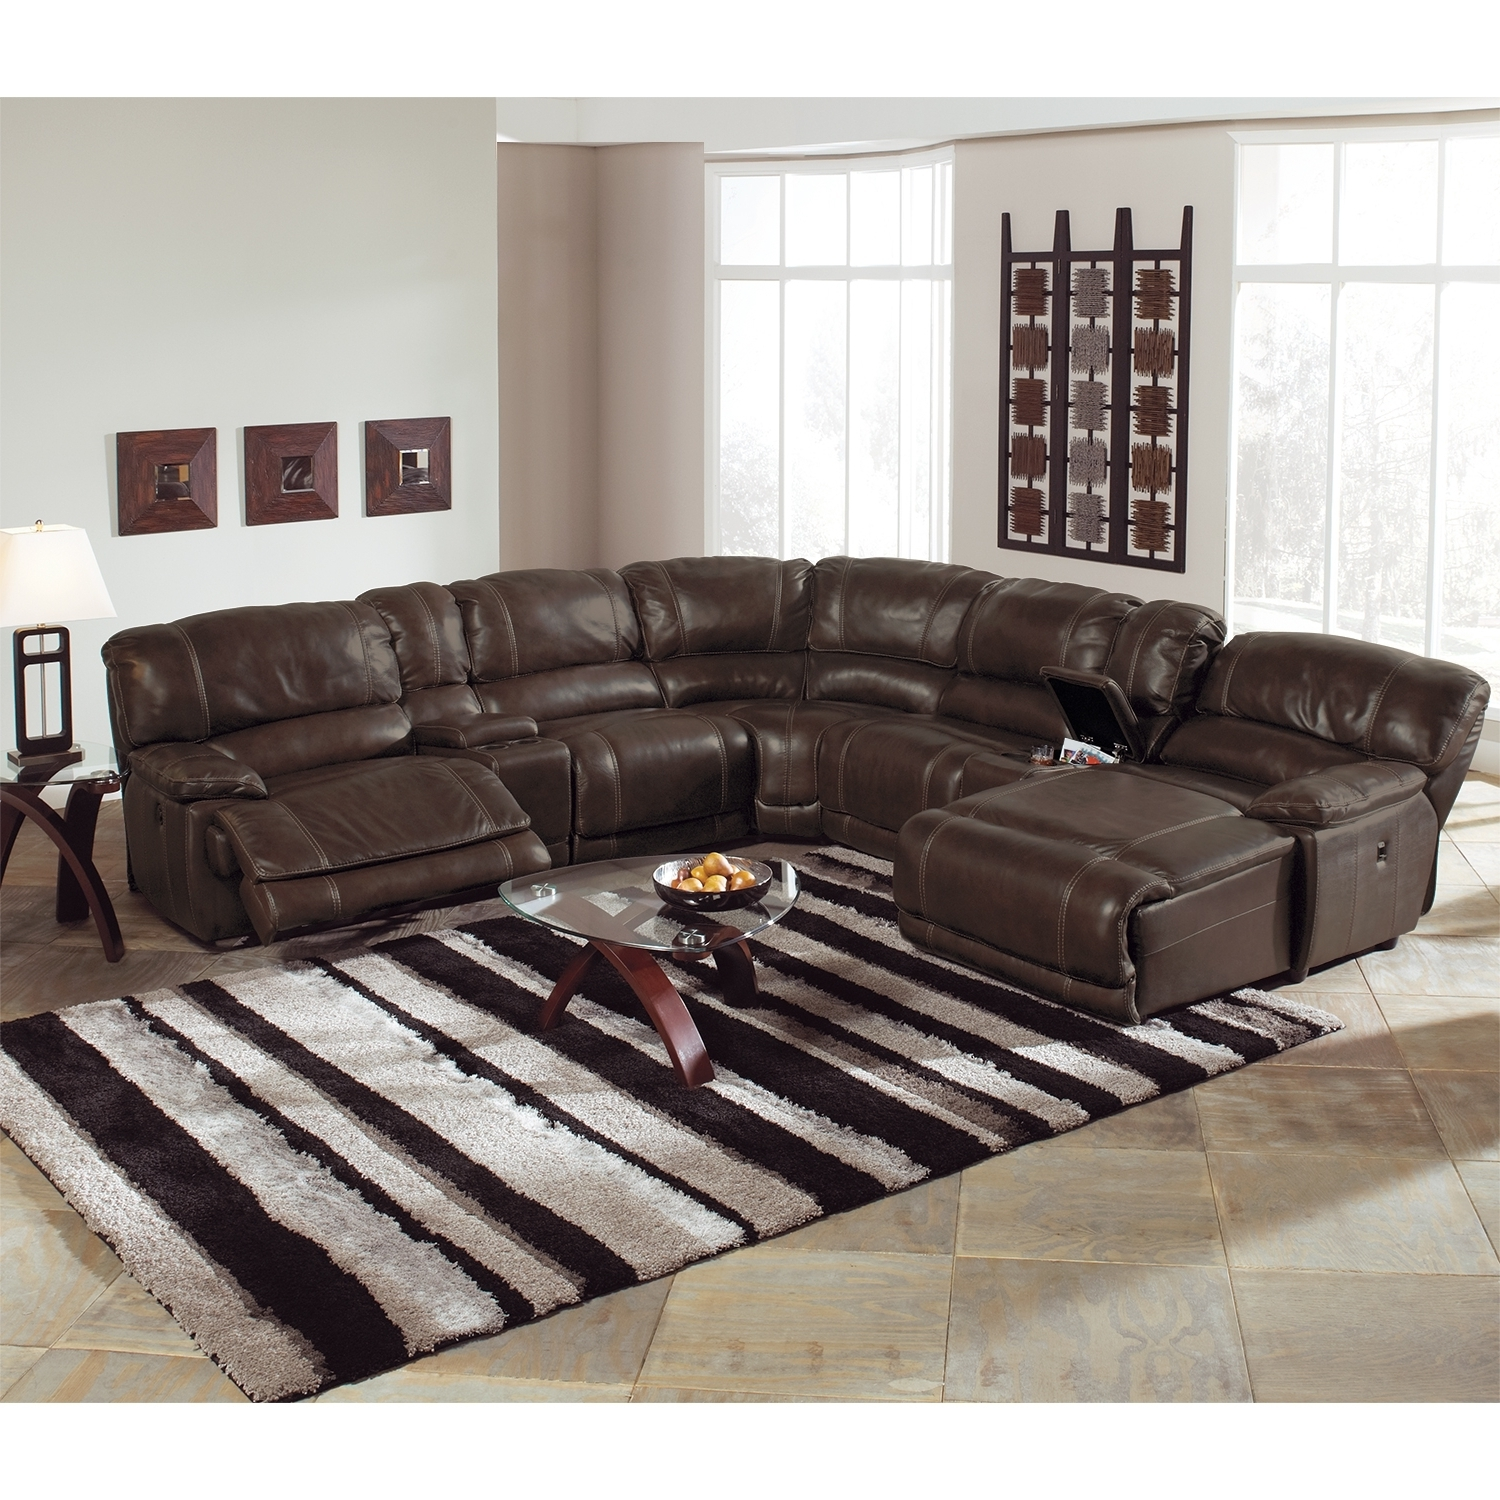 6 Piece Leather Sectional Sofas For Preferred St (View 2 of 20)